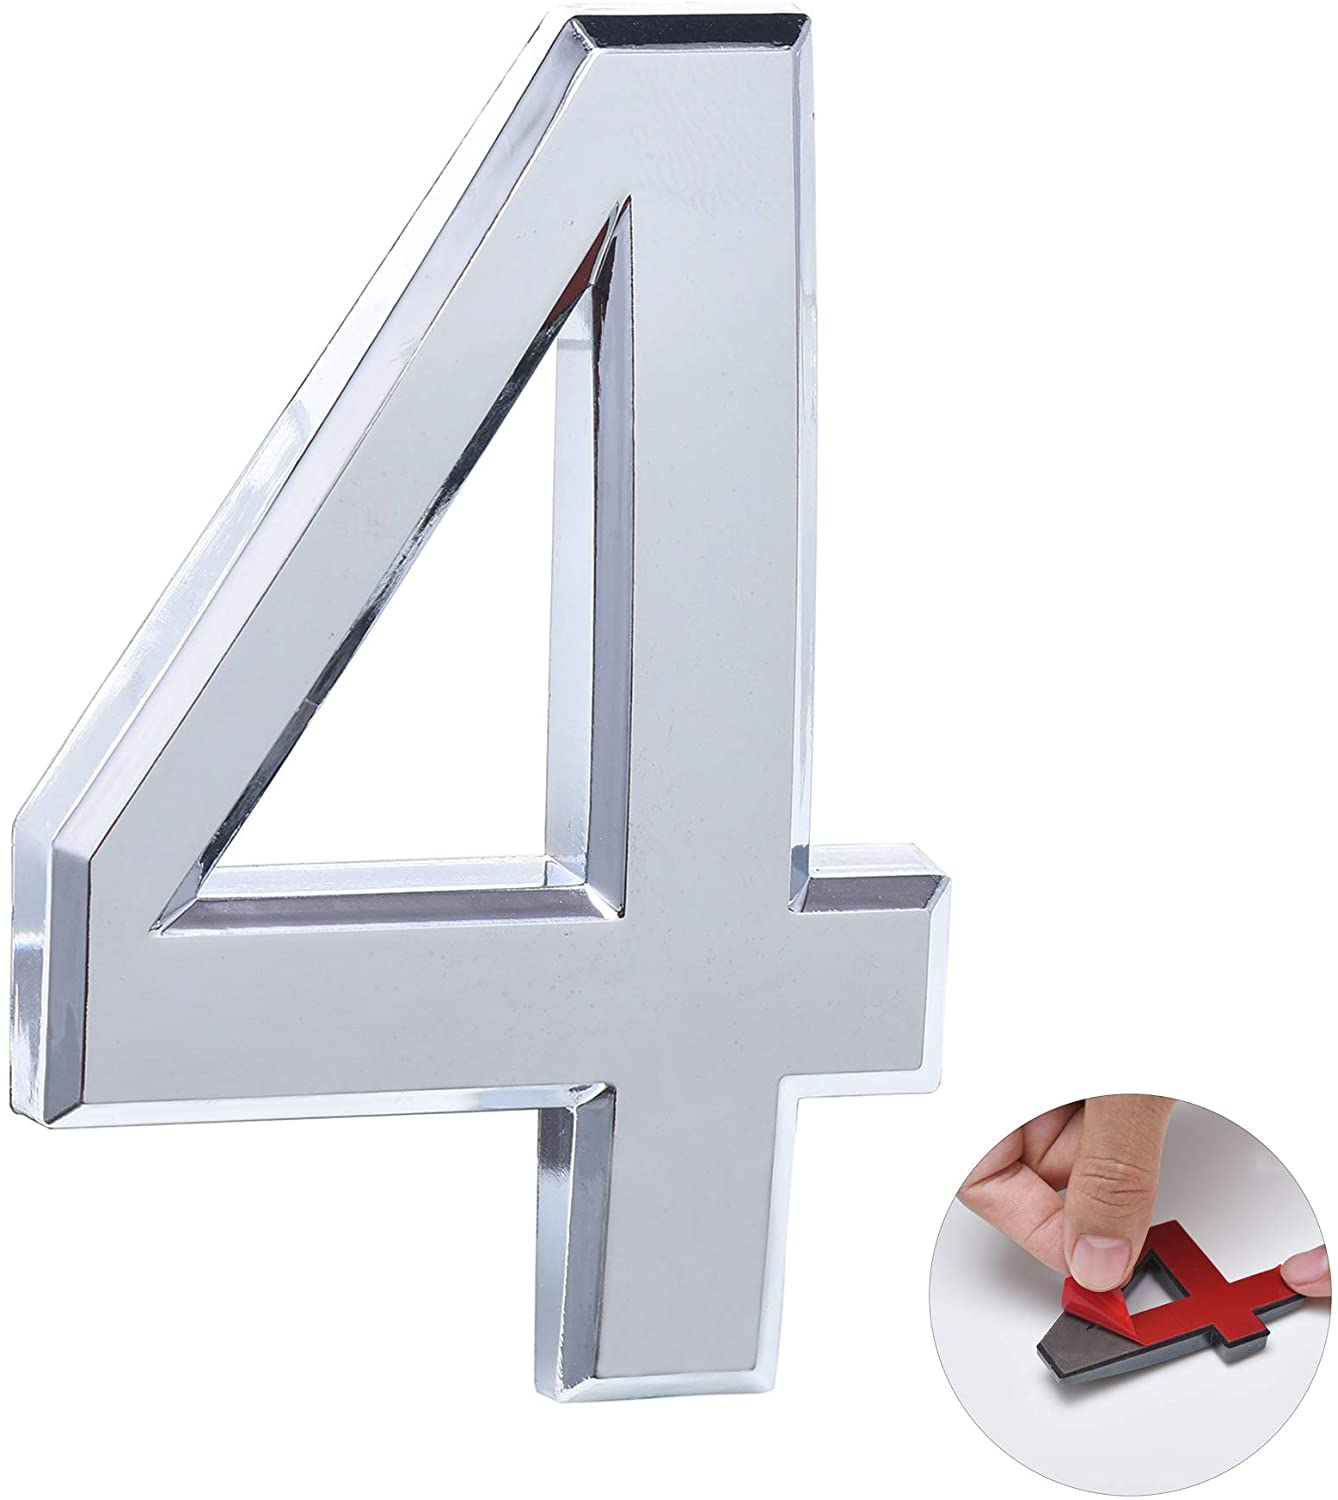 2.75 Inch Self Adhesive Mailbox Number 4, Door Number Stickers for House/Office/Apartment/Address Plaque, Silver